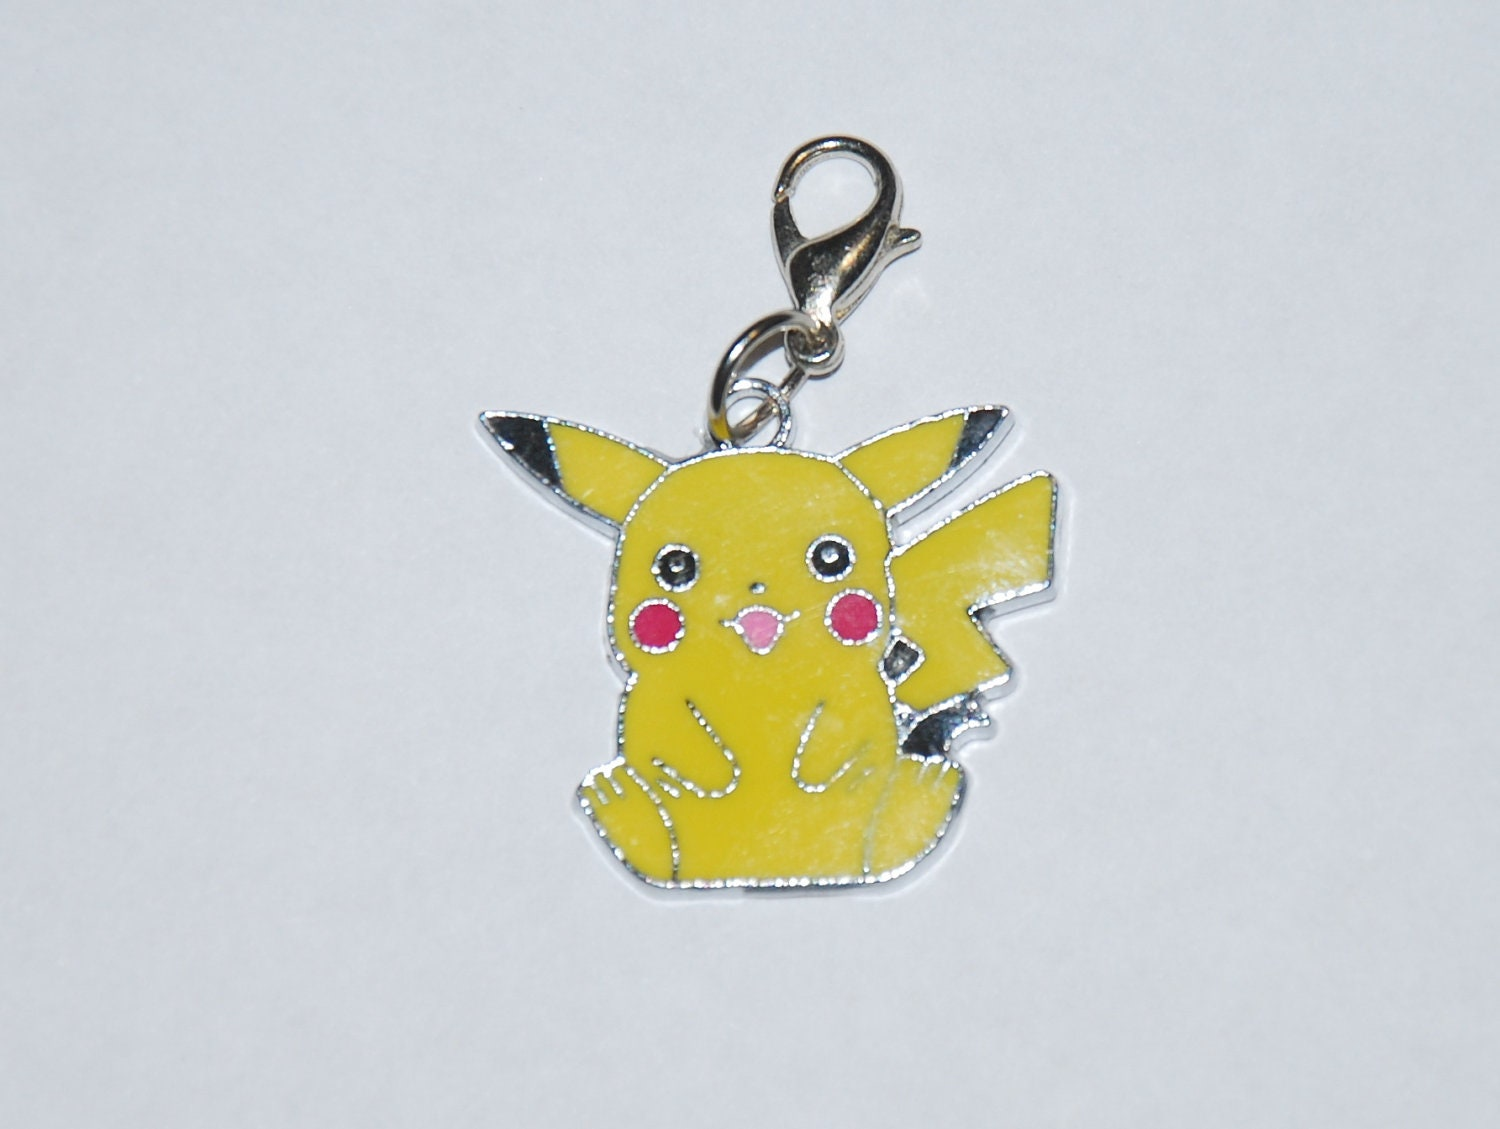 I have this adorable Pokemon Pikachu clip charm.